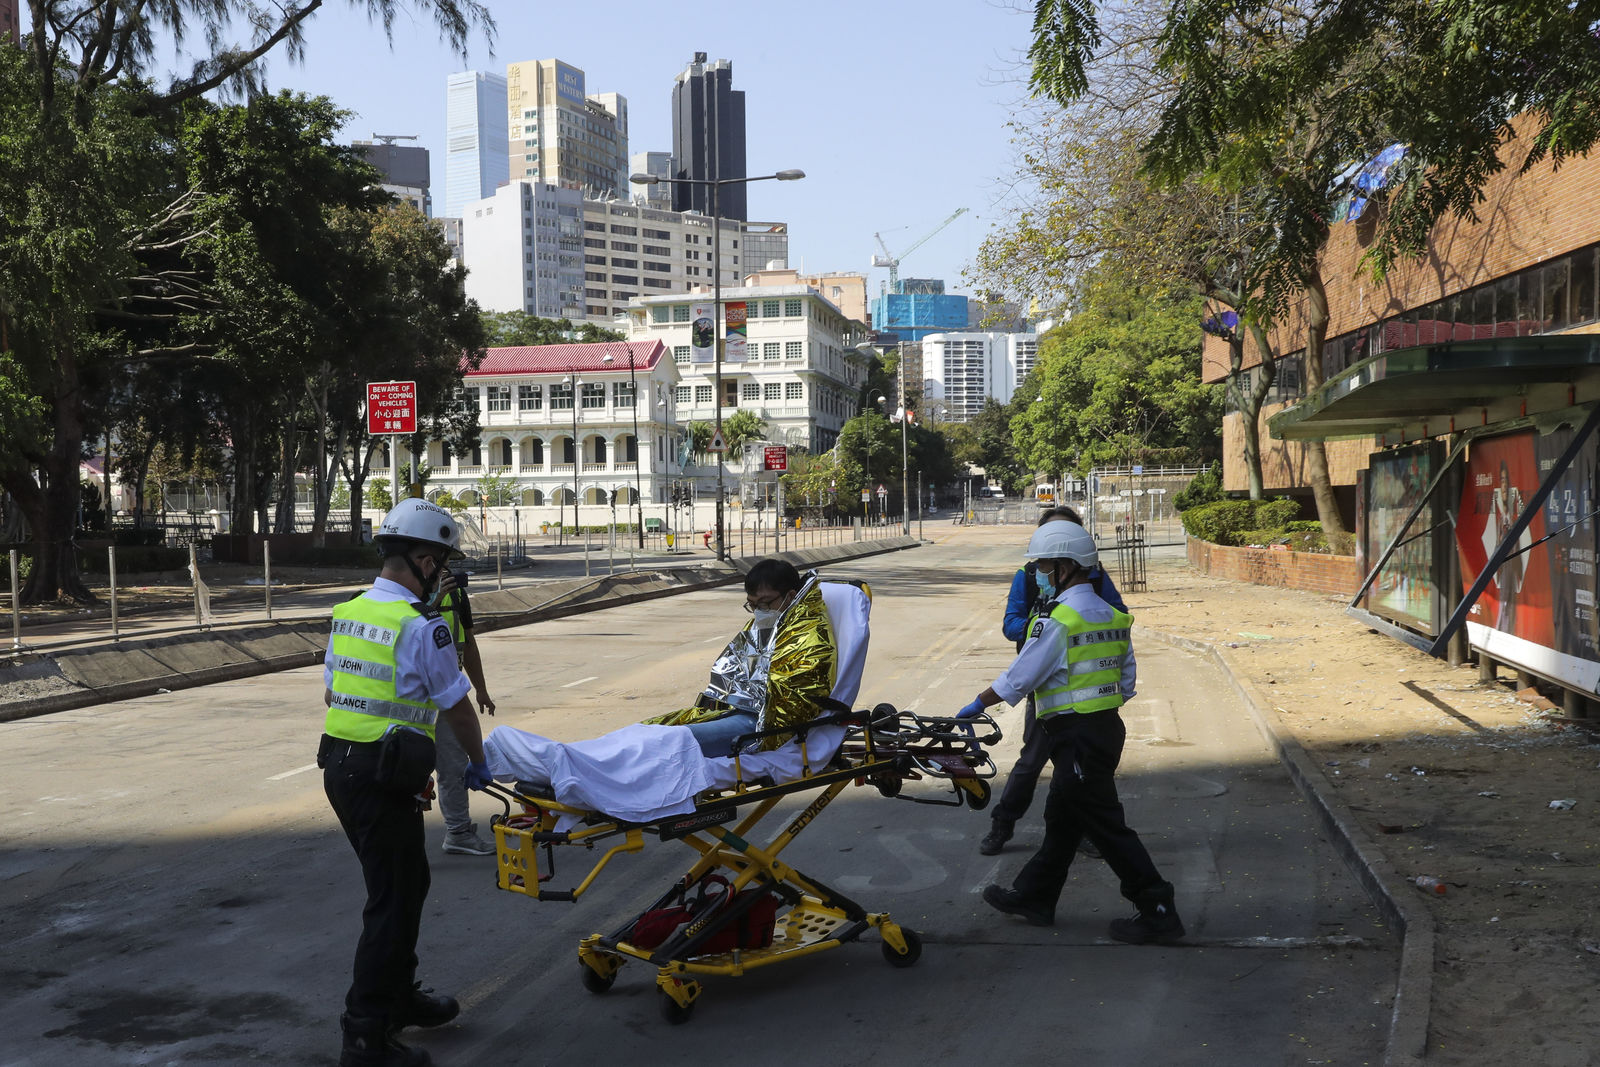 A protester is wheeled on a stretcher by first aid personnel as they leave the Polytechnic University campus in Hong Kong, Thursday, Nov. 21, 2019. (AP Photo/Vincent Thian)